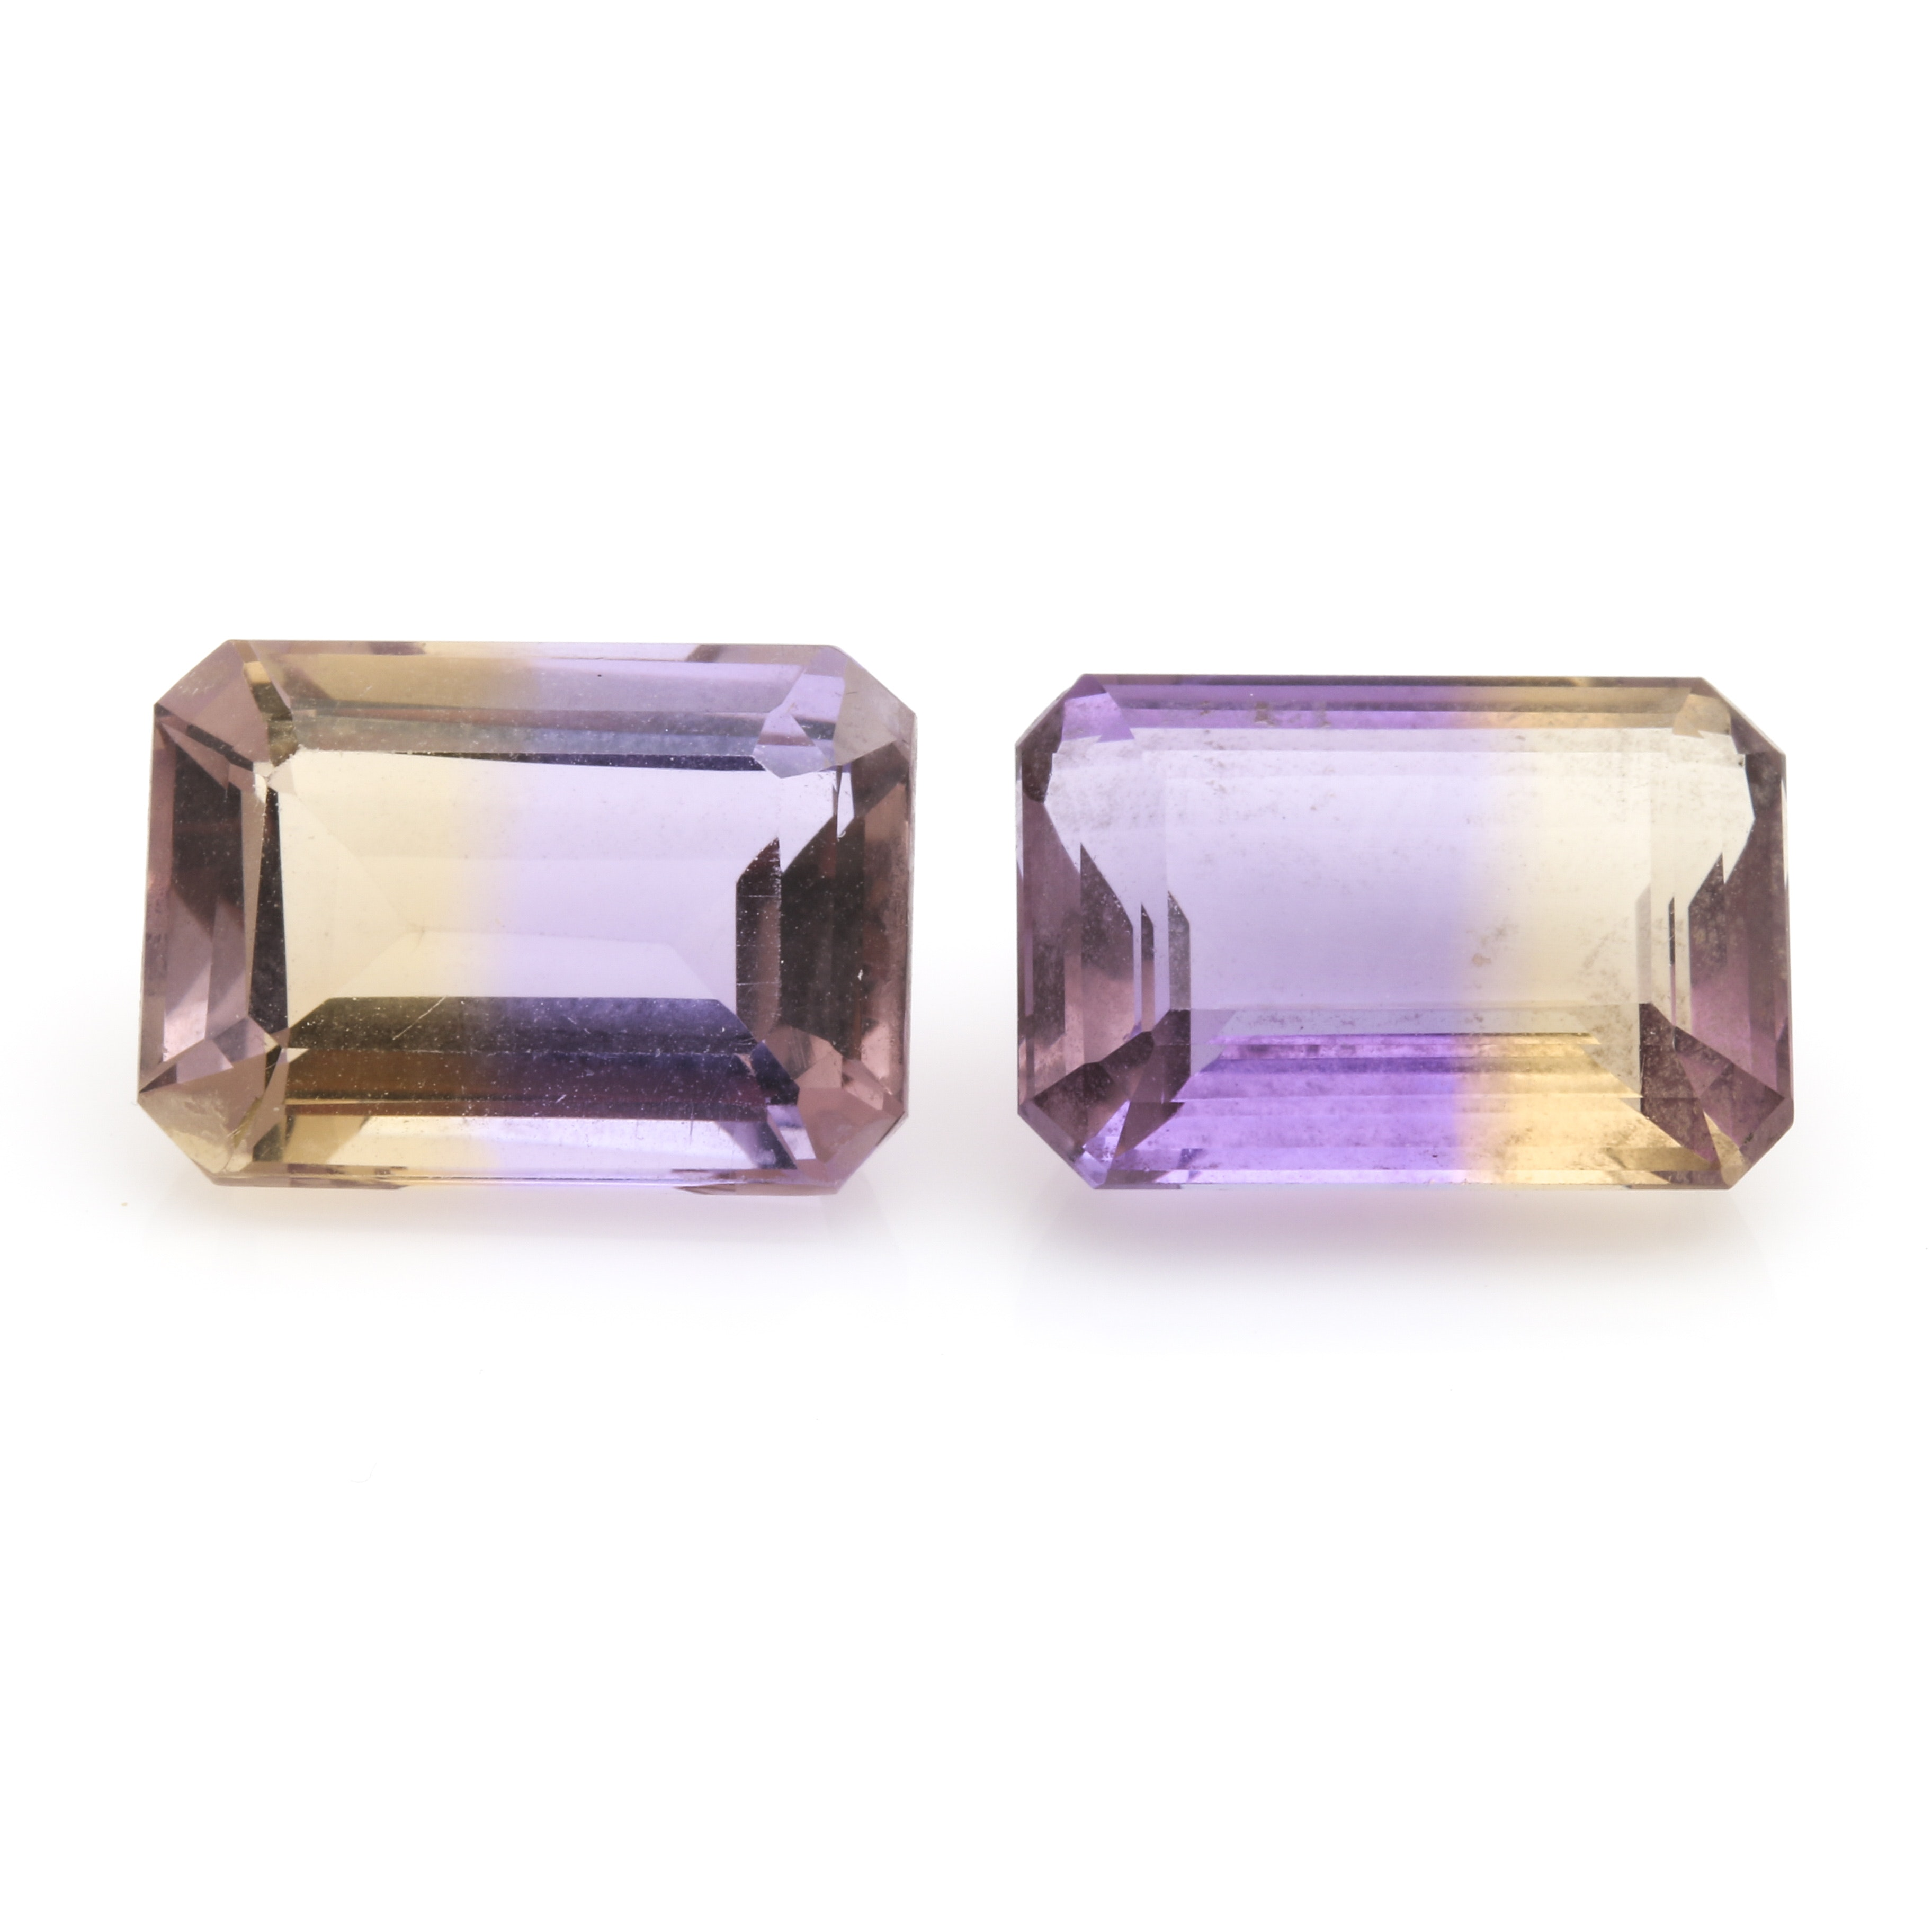 Pair of 14.94 CTW Ametrine Loose Gemstones